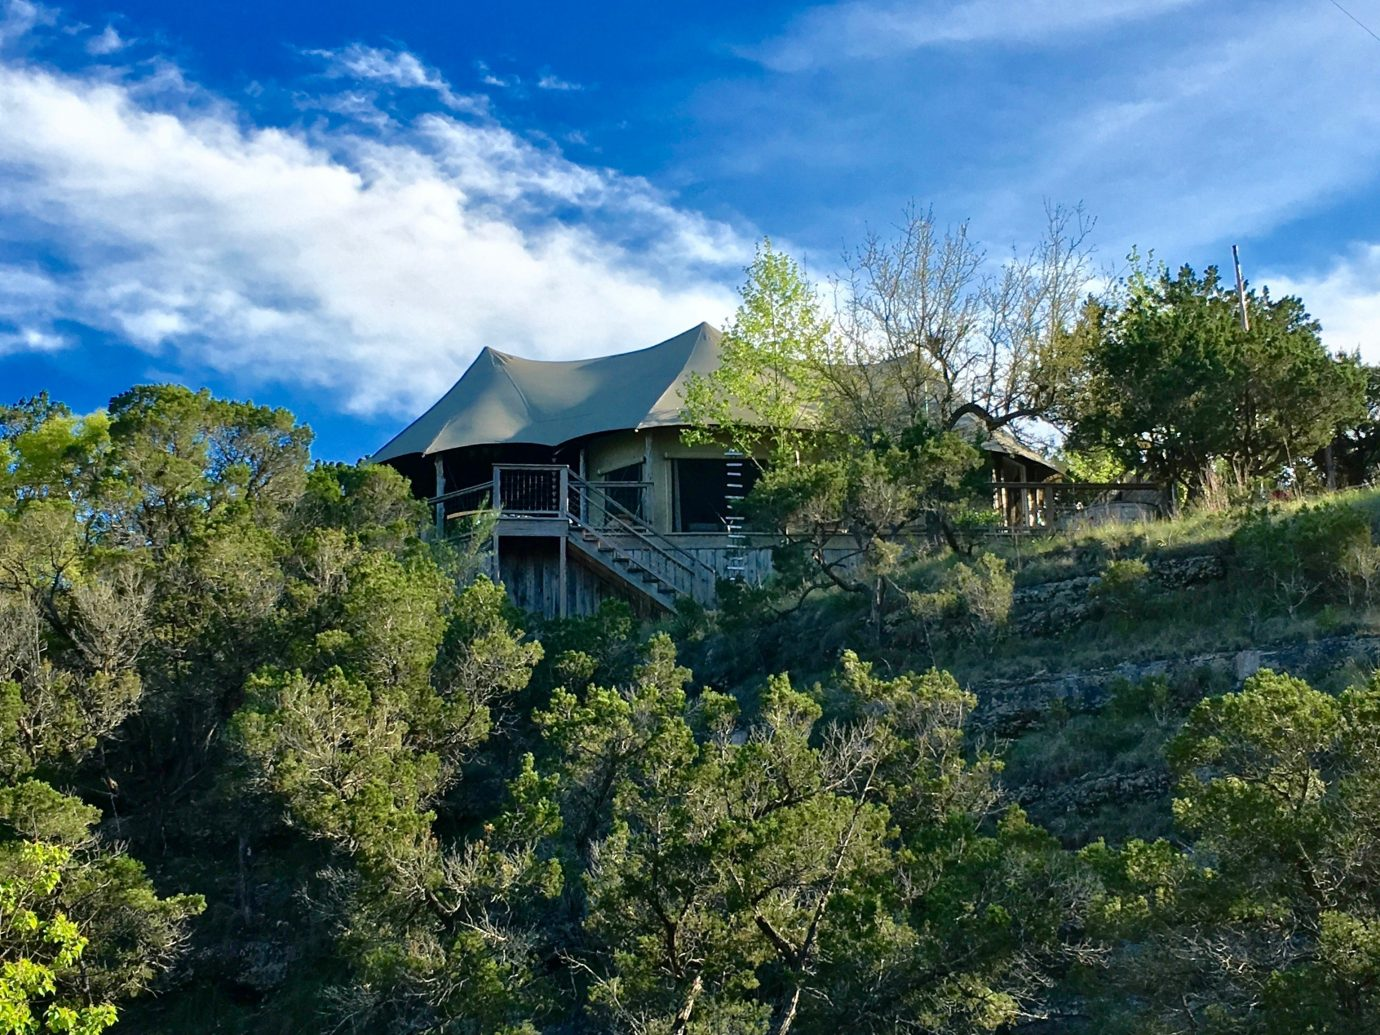 Glamping Outdoors + Adventure Trip Ideas tree outdoor sky Nature mountainous landforms wilderness mountain estate hill Forest mountain range rural area landscape plant bushes surrounded lush